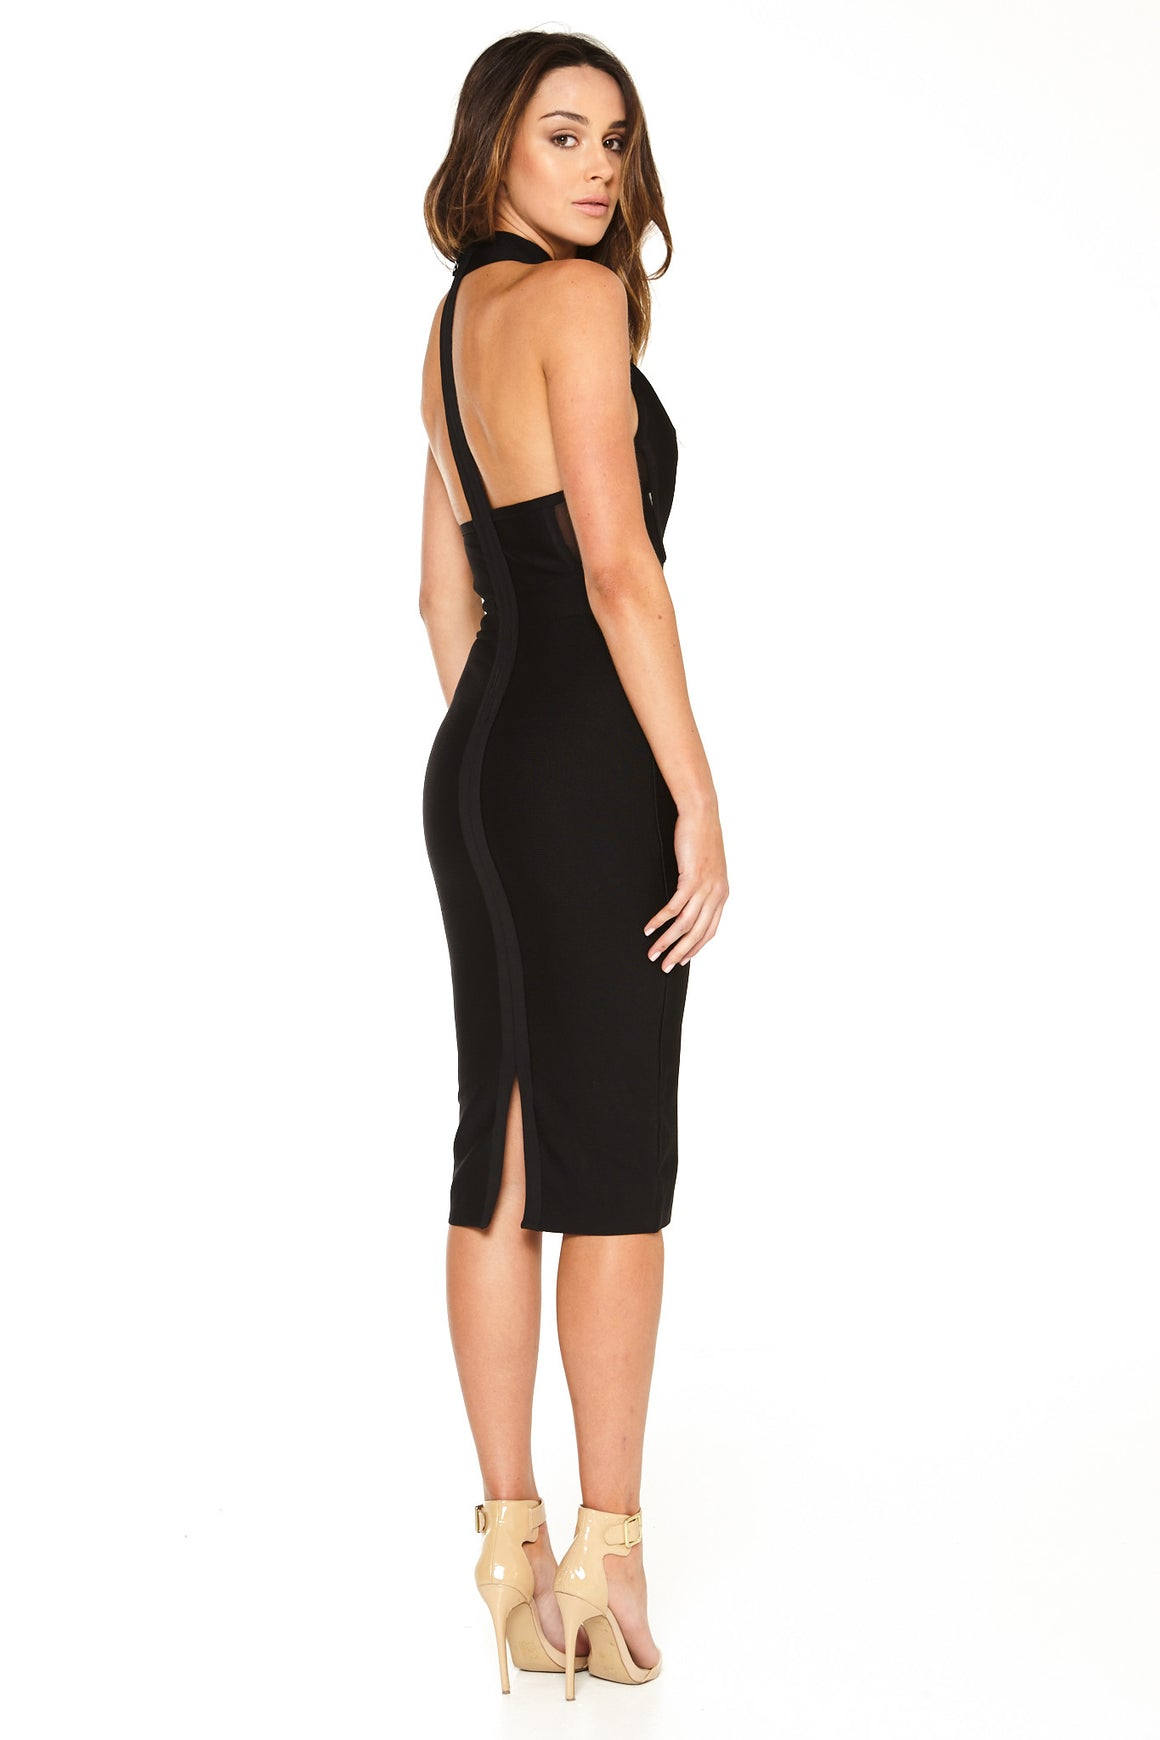 Cora Keyhole Bandage Dress - Black